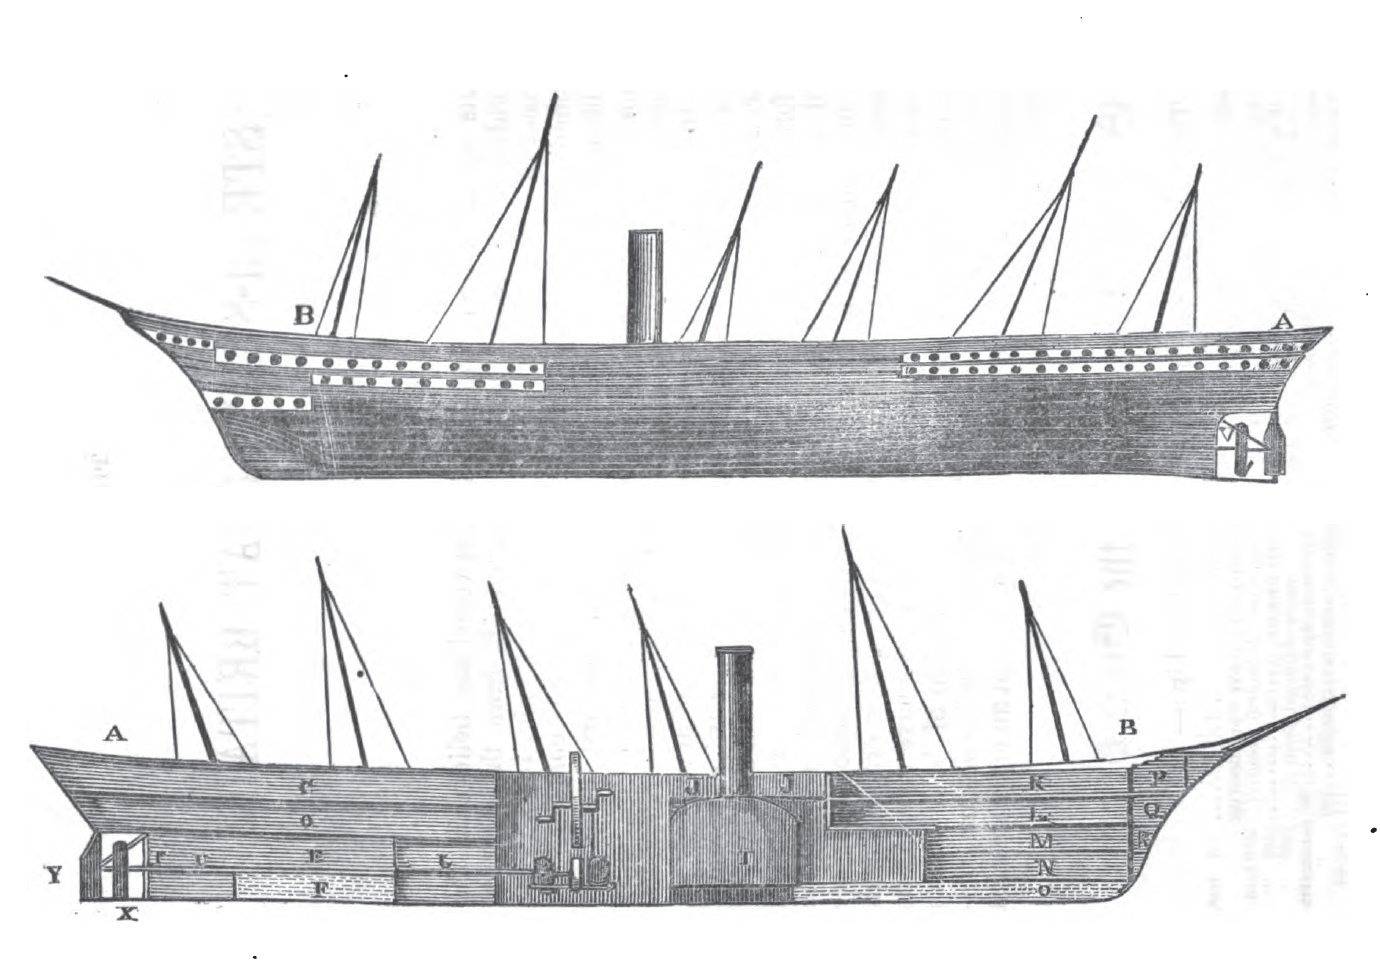 Profile (top) and longitudinal vertical section (bottom) of SS Great Britain, showing her interior layout and deck plan. Key to symbols in bottom image as follows (from Claxton, p. 6): A–B: Surface line of upper deck. C: Aft or promenade deck. D (looks like an